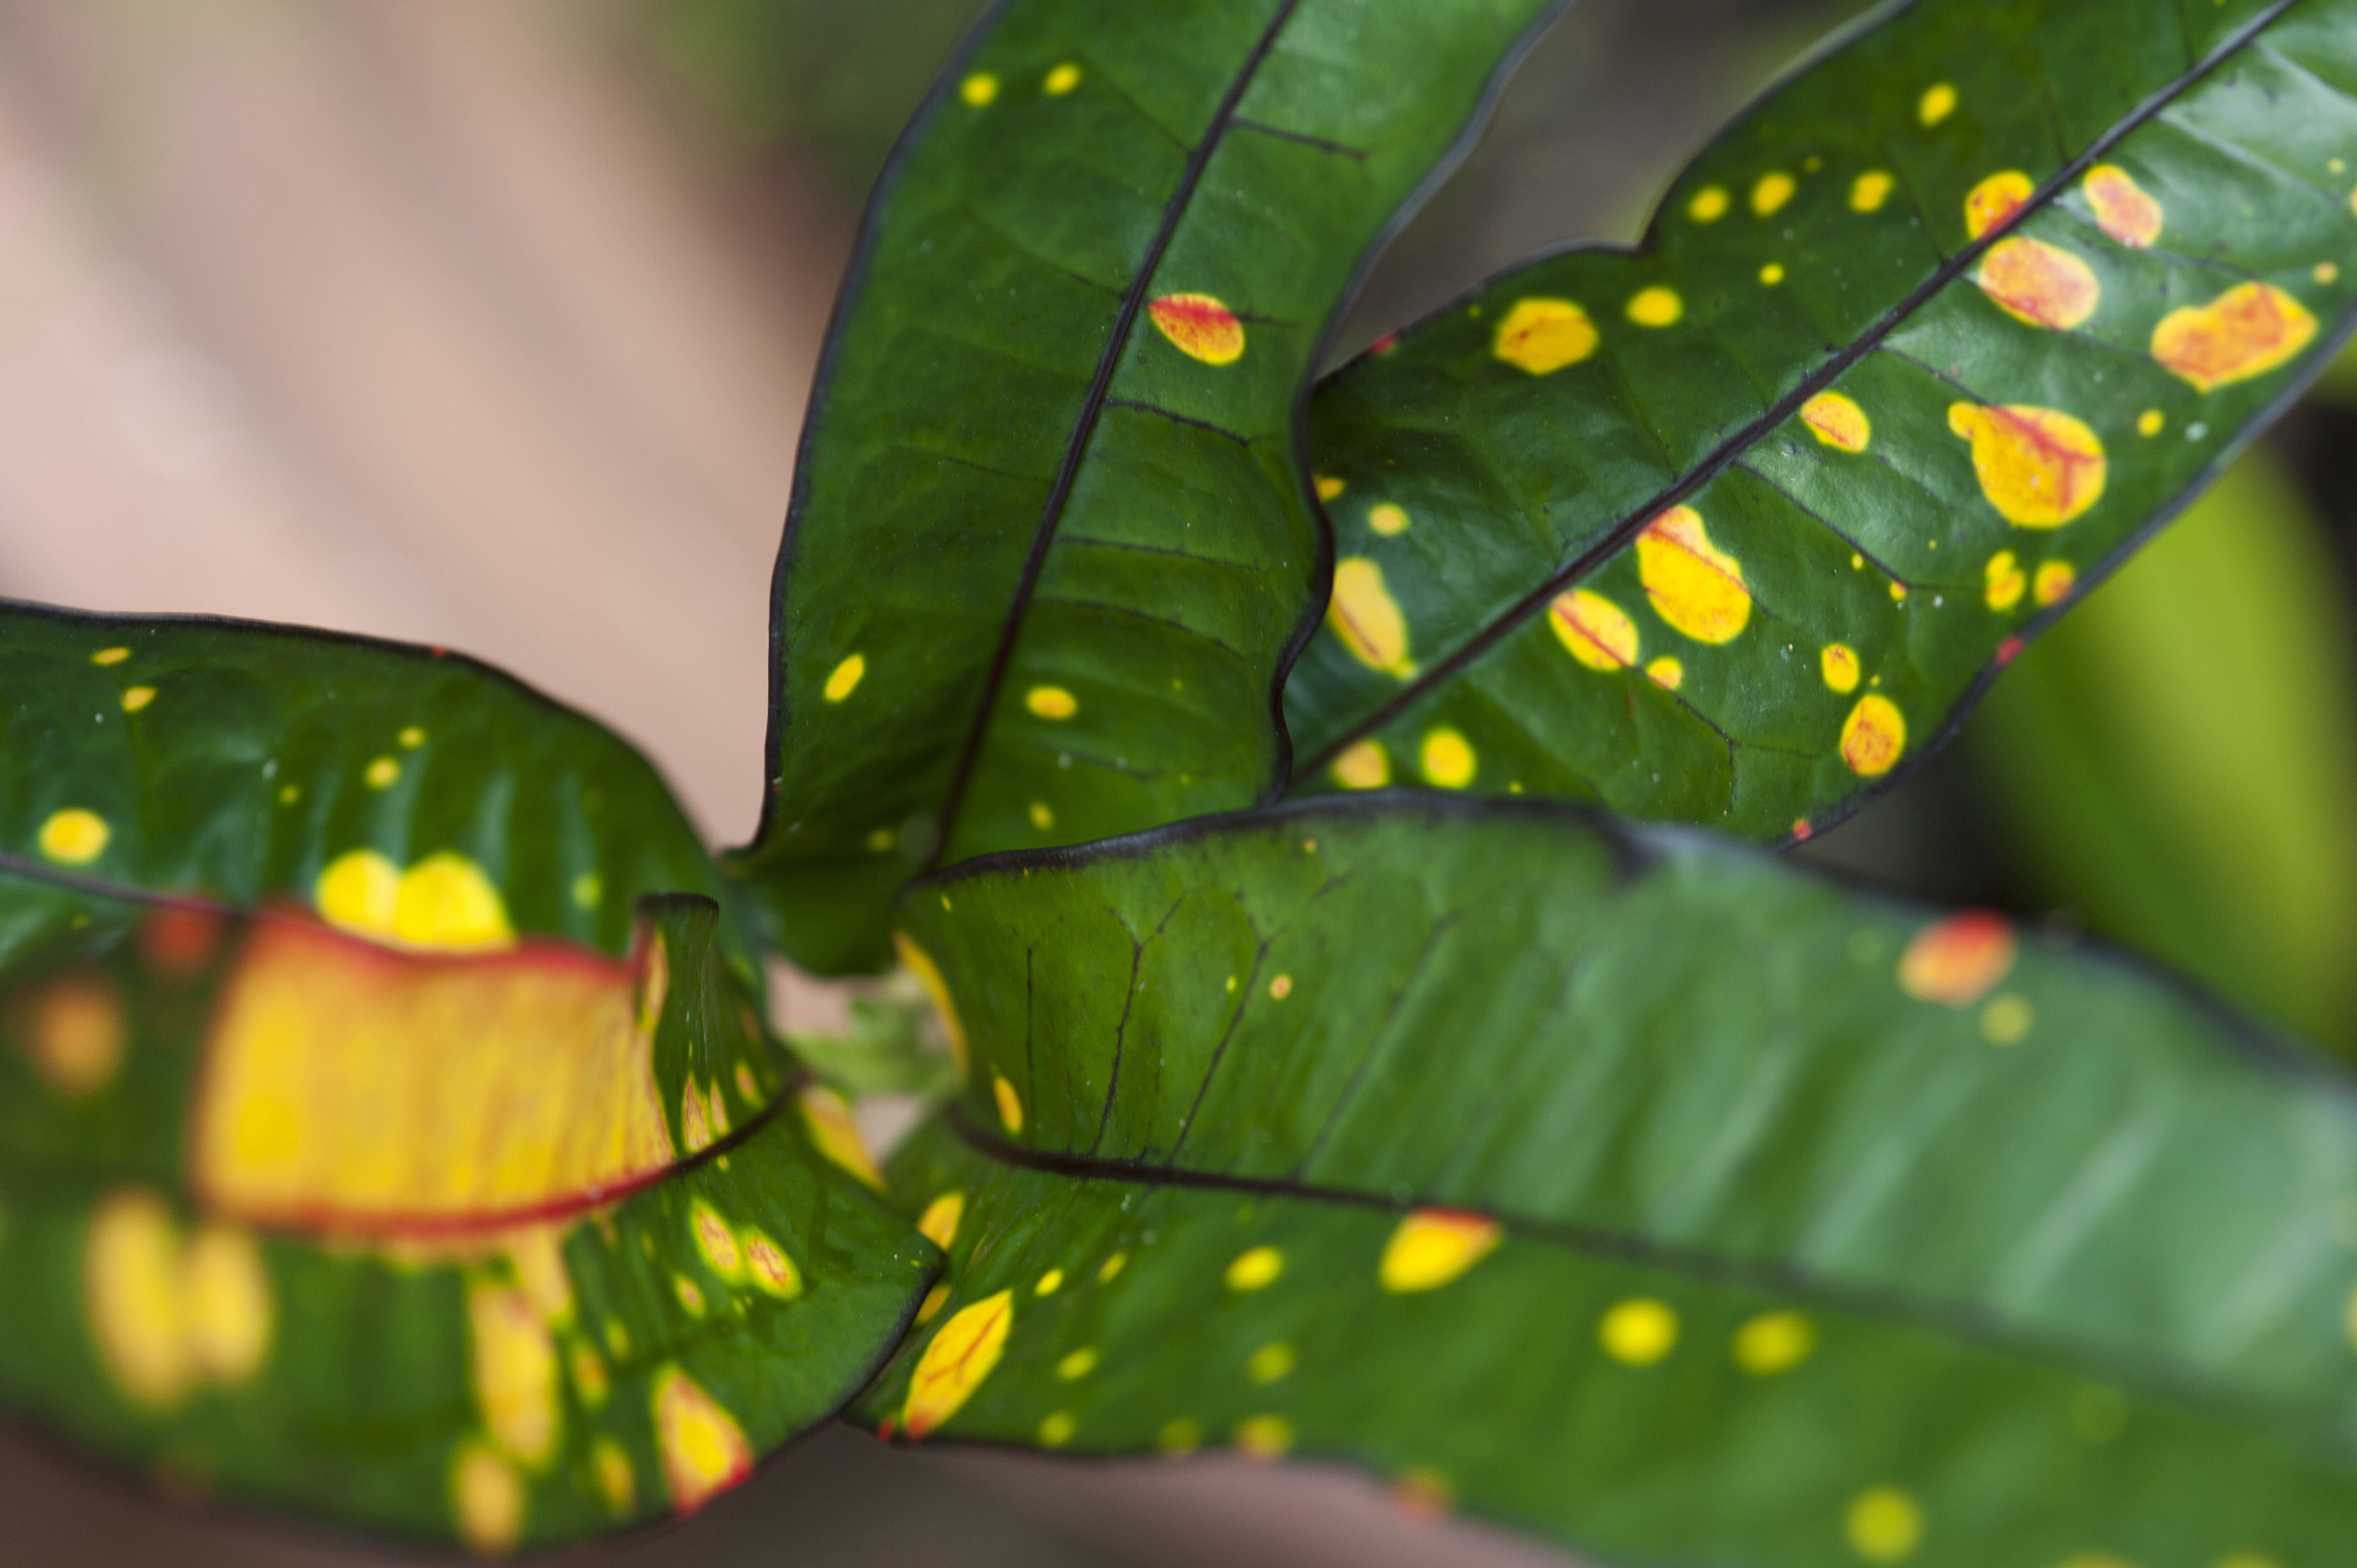 Pretty yellow and green variegated Croton leaf forming a natural abstract background pattern cultivated as an ornamental foliage plant for the garden and house